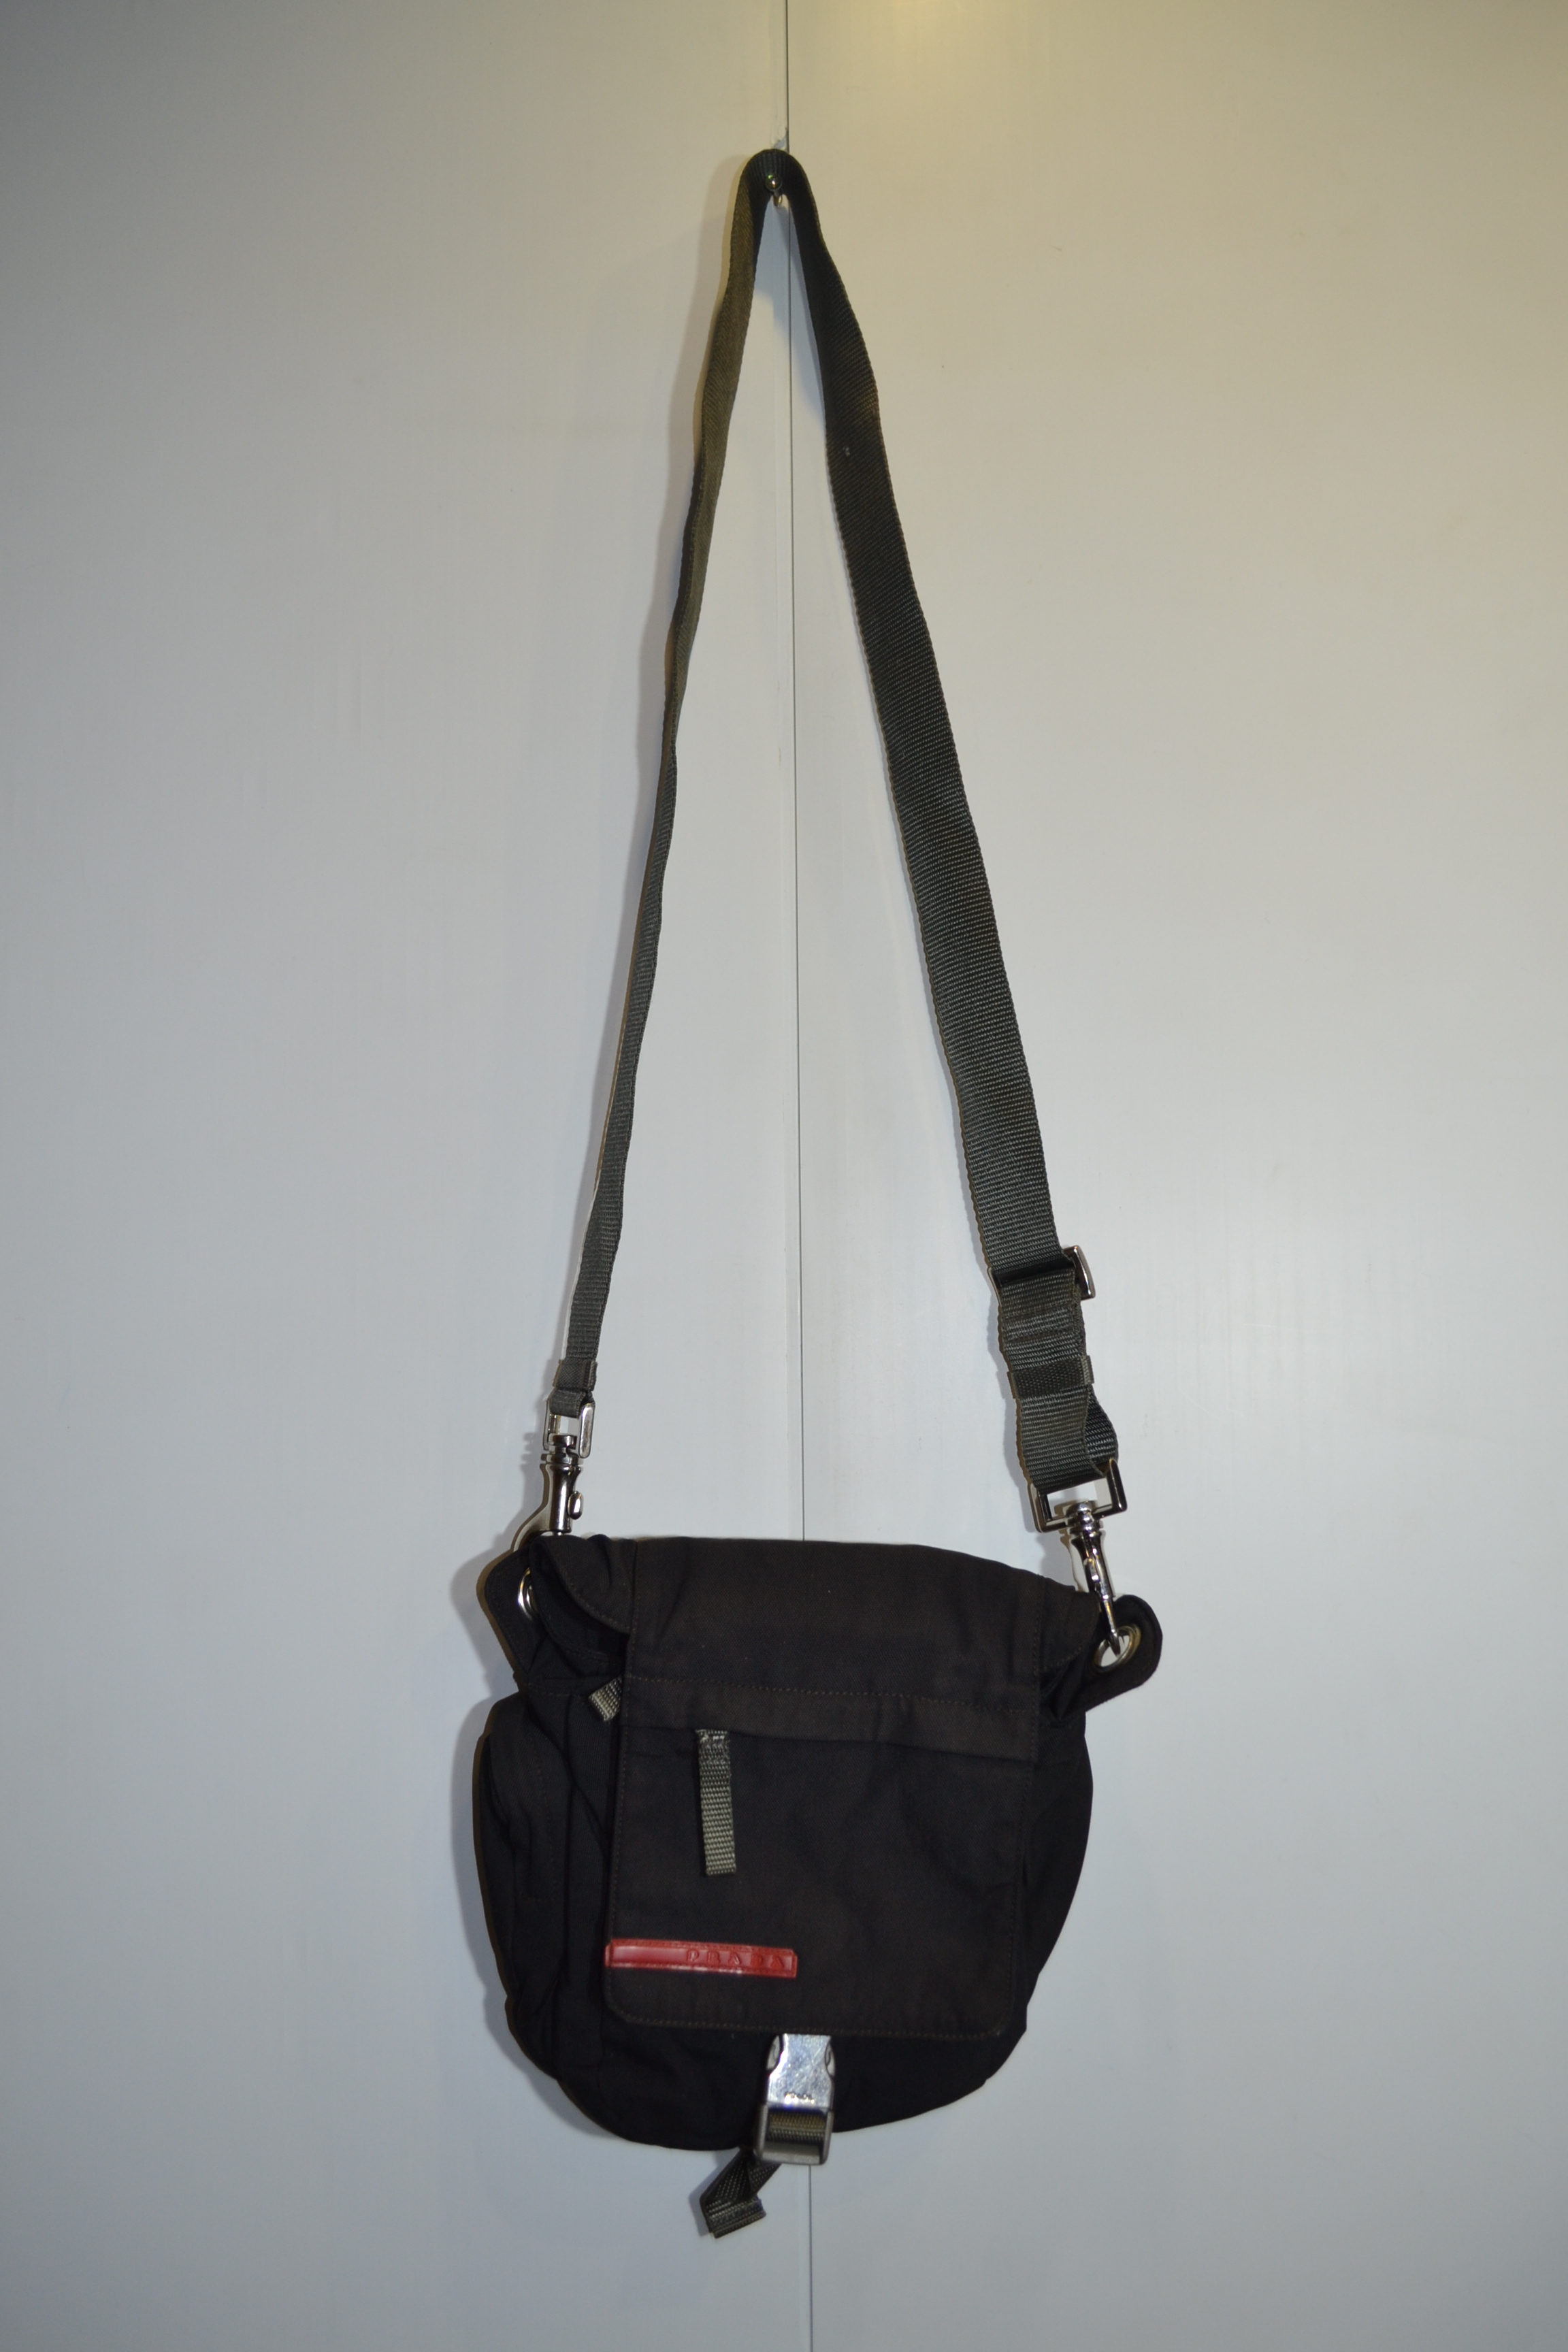 4fc8c99e4f12 Prada Prada Sport Cross Body 4va440 Nylon Bag Black Grey And Red ...